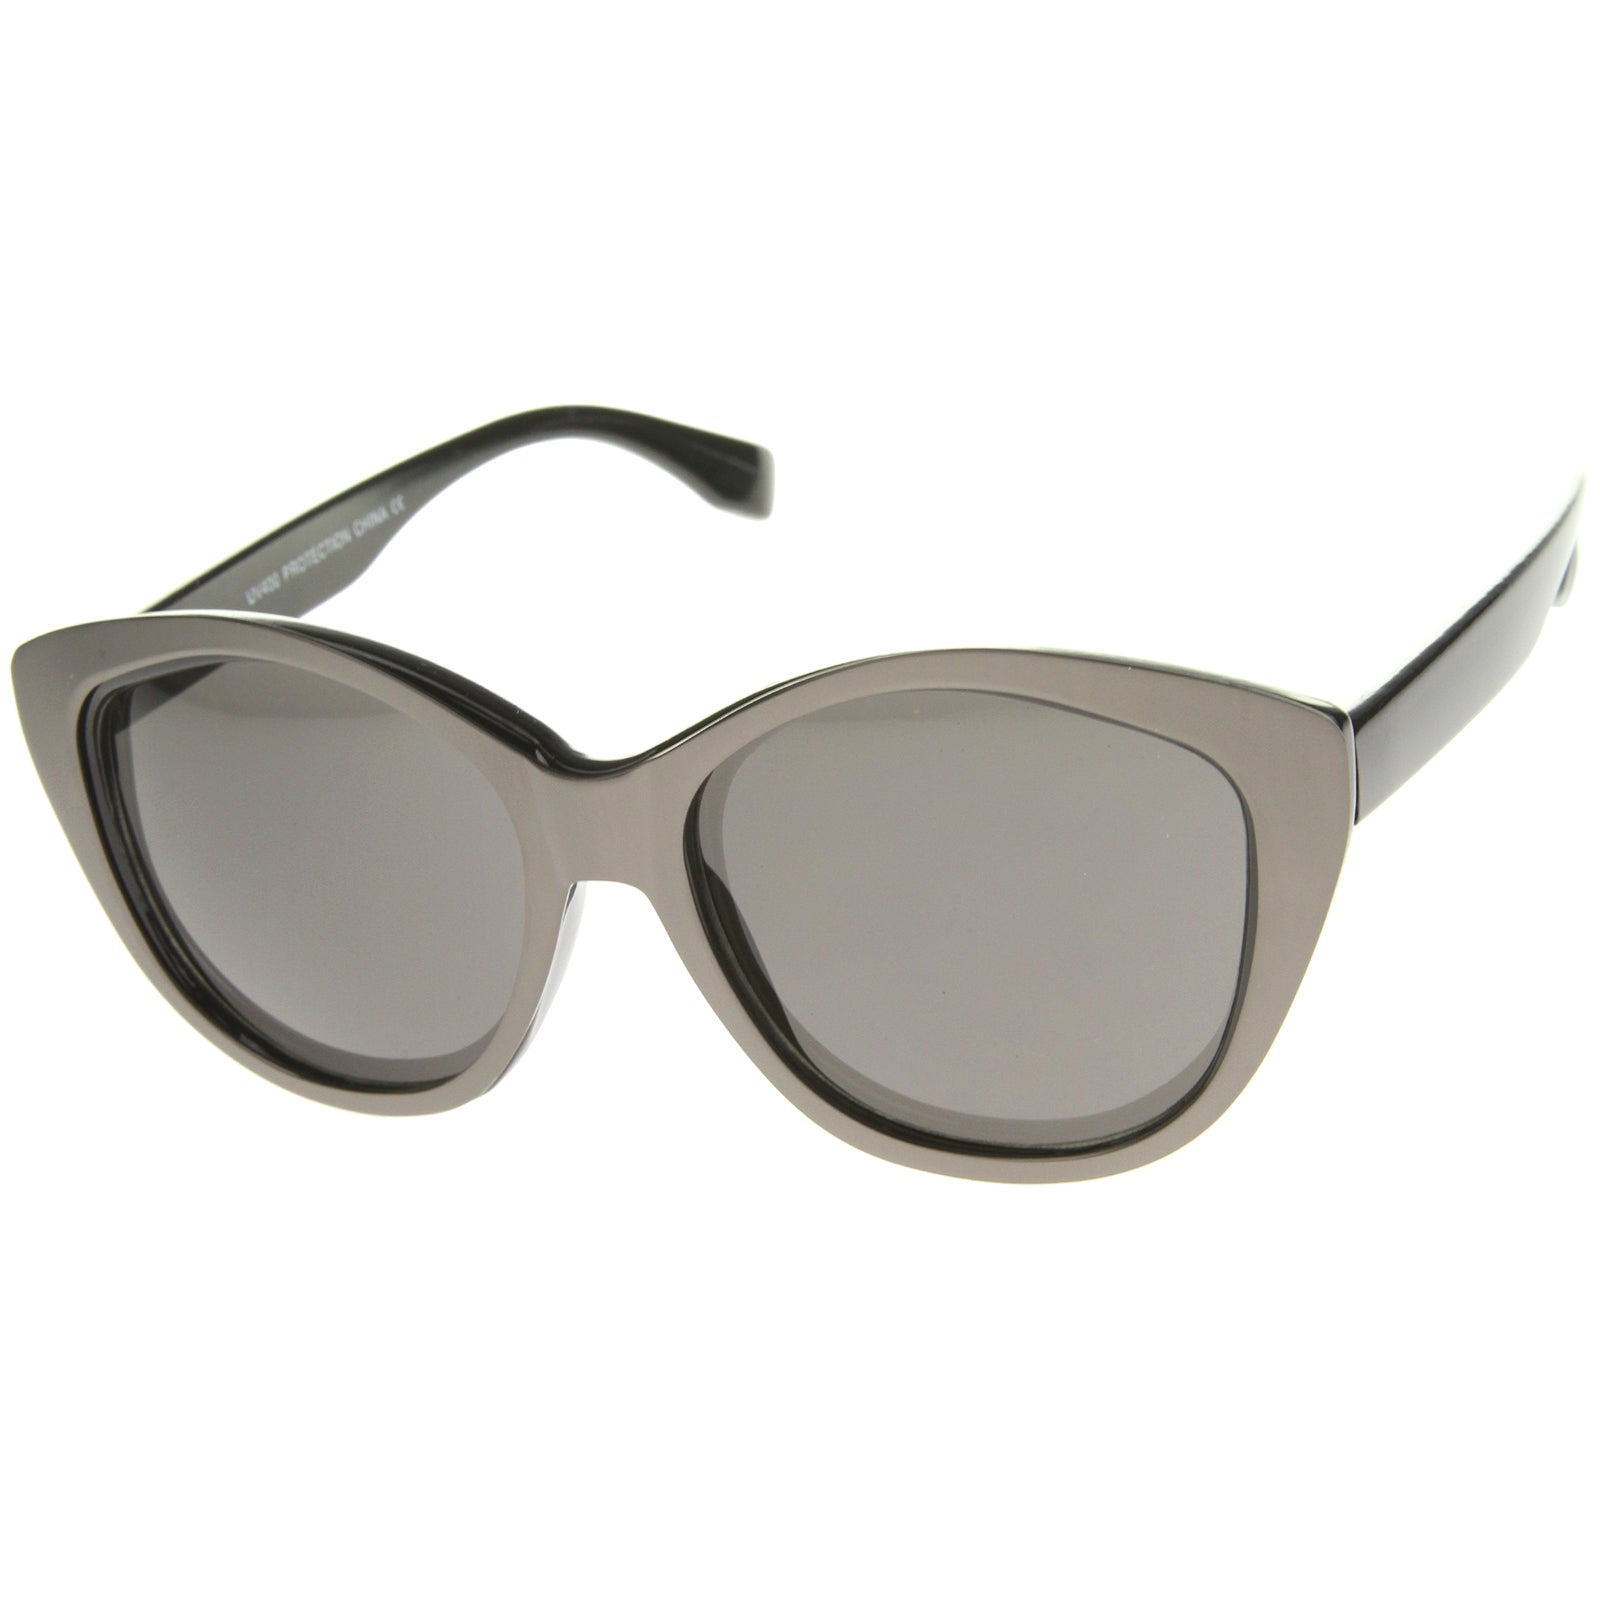 Women's High Fashion Two-Toned Tinted Lens Oversize Cat Eye Sunglasses 55mm - sunglass.la - 10